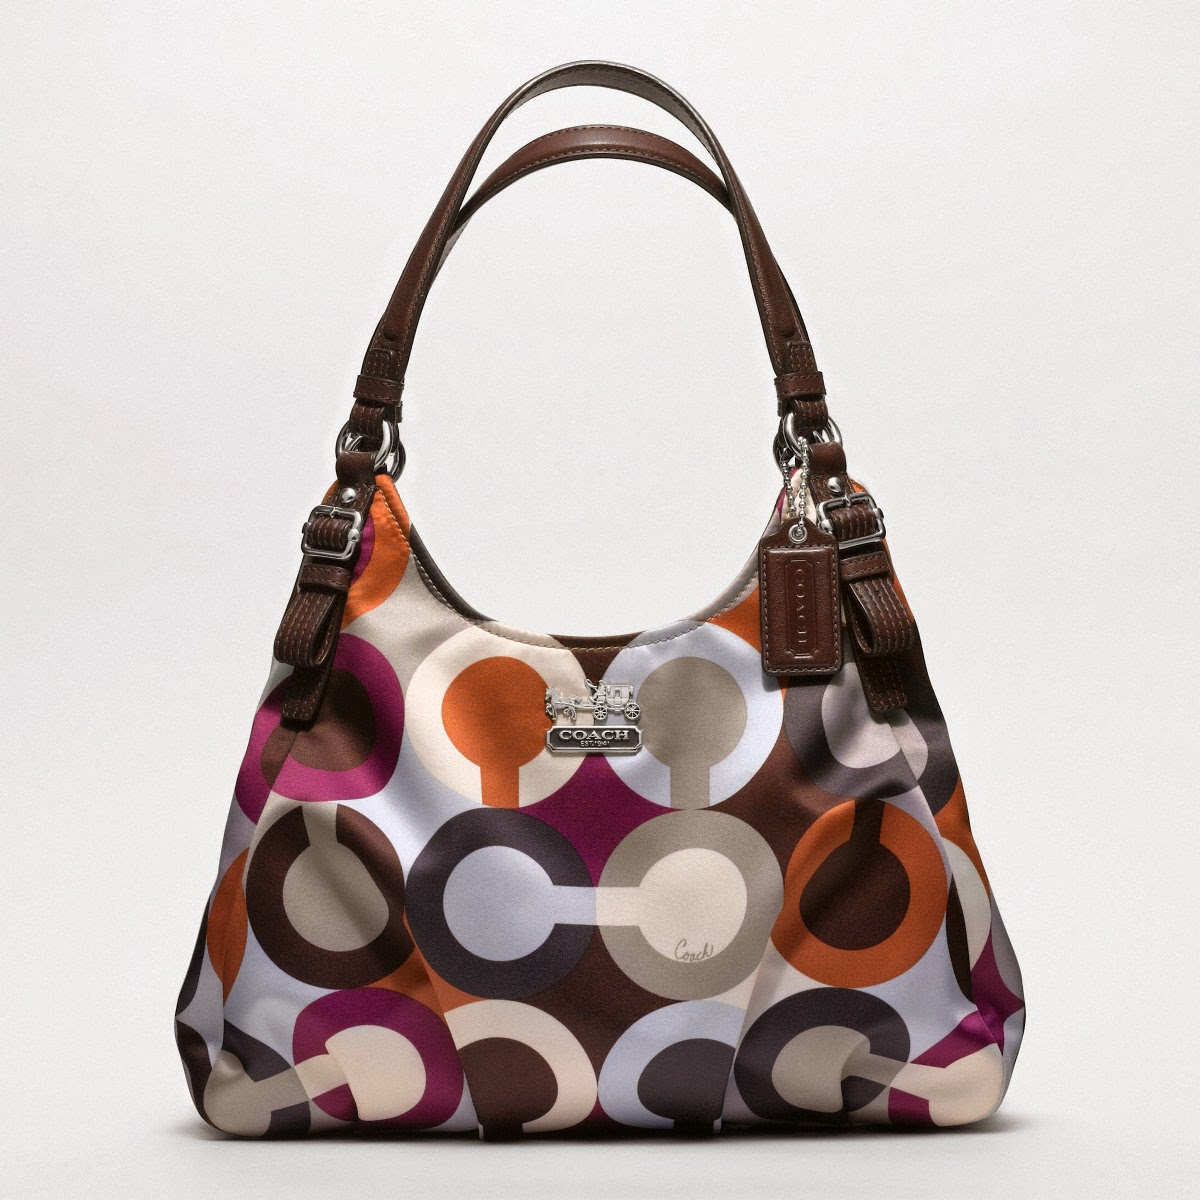 My Coach Madison Graphic Op Art Metallic Maggie Bag